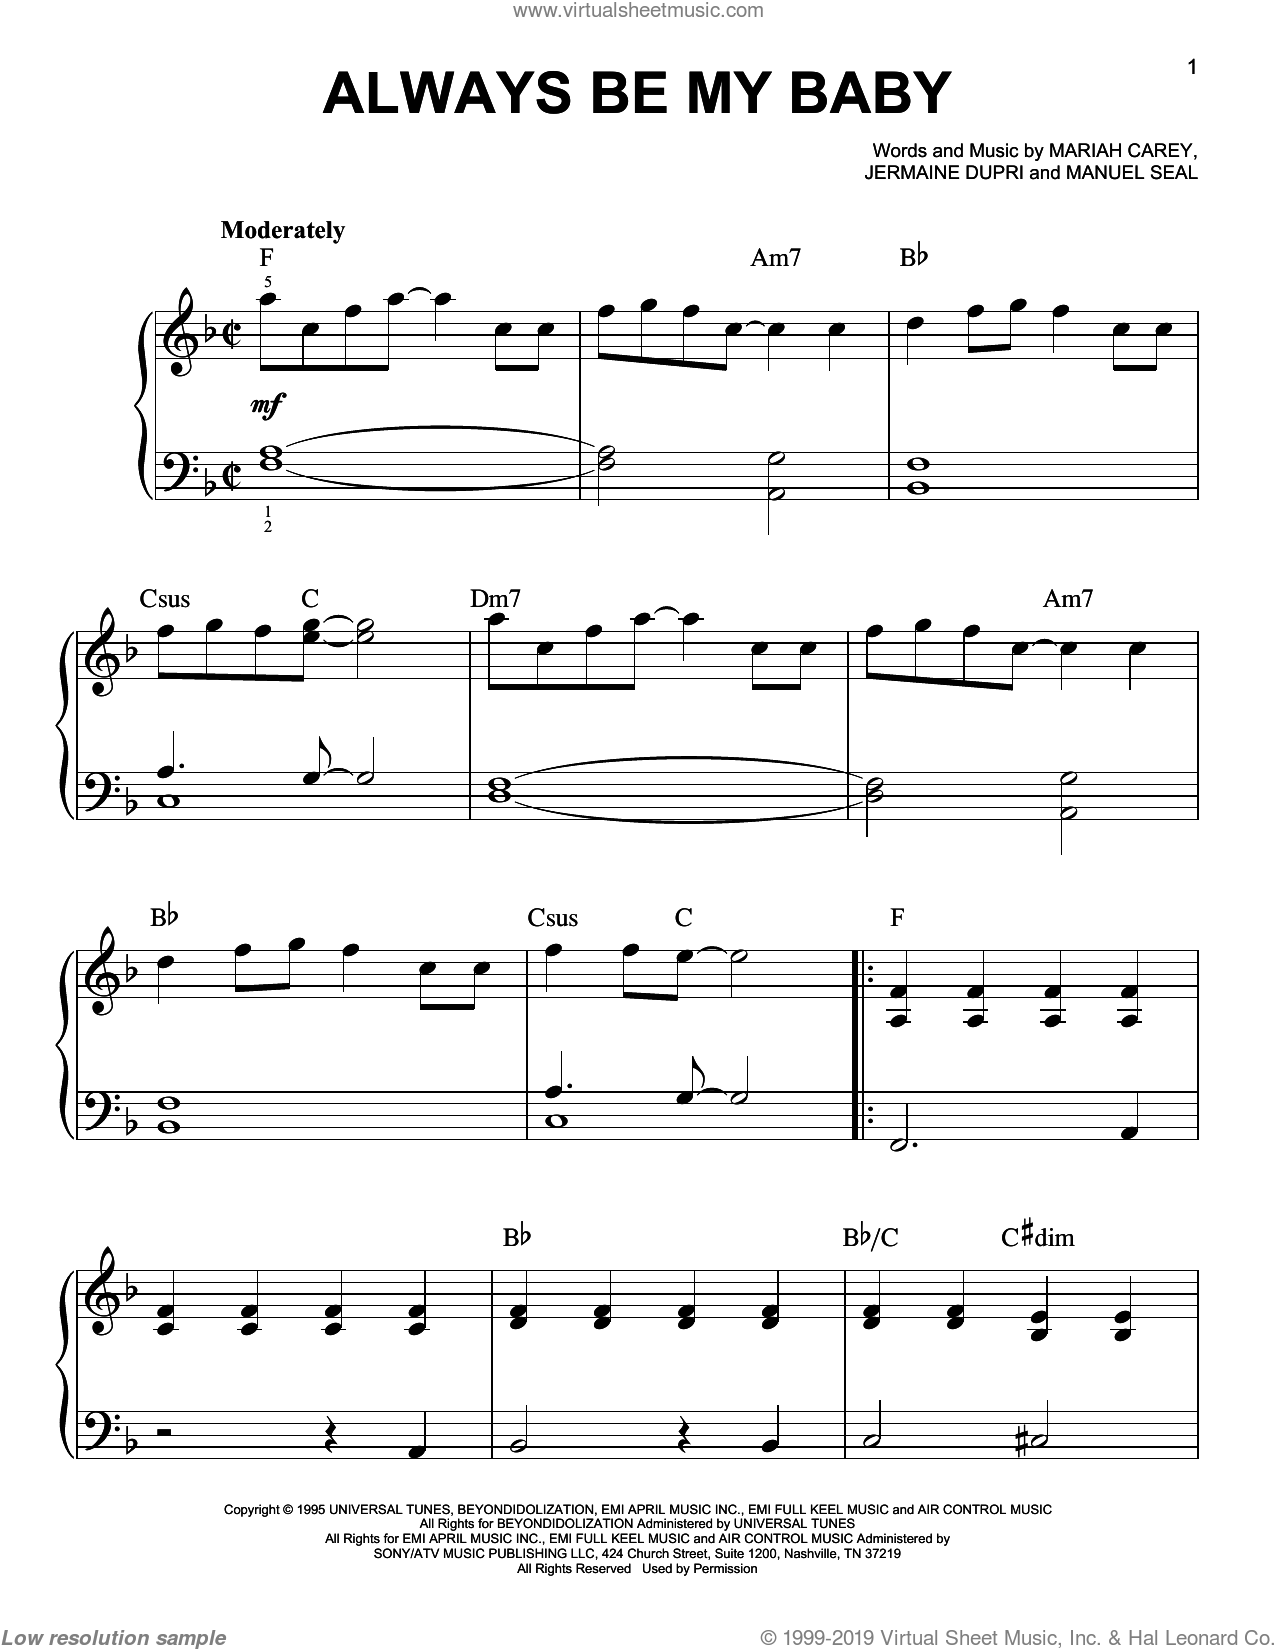 Always Be My Baby sheet music for piano solo (chords) by Manuel Seal